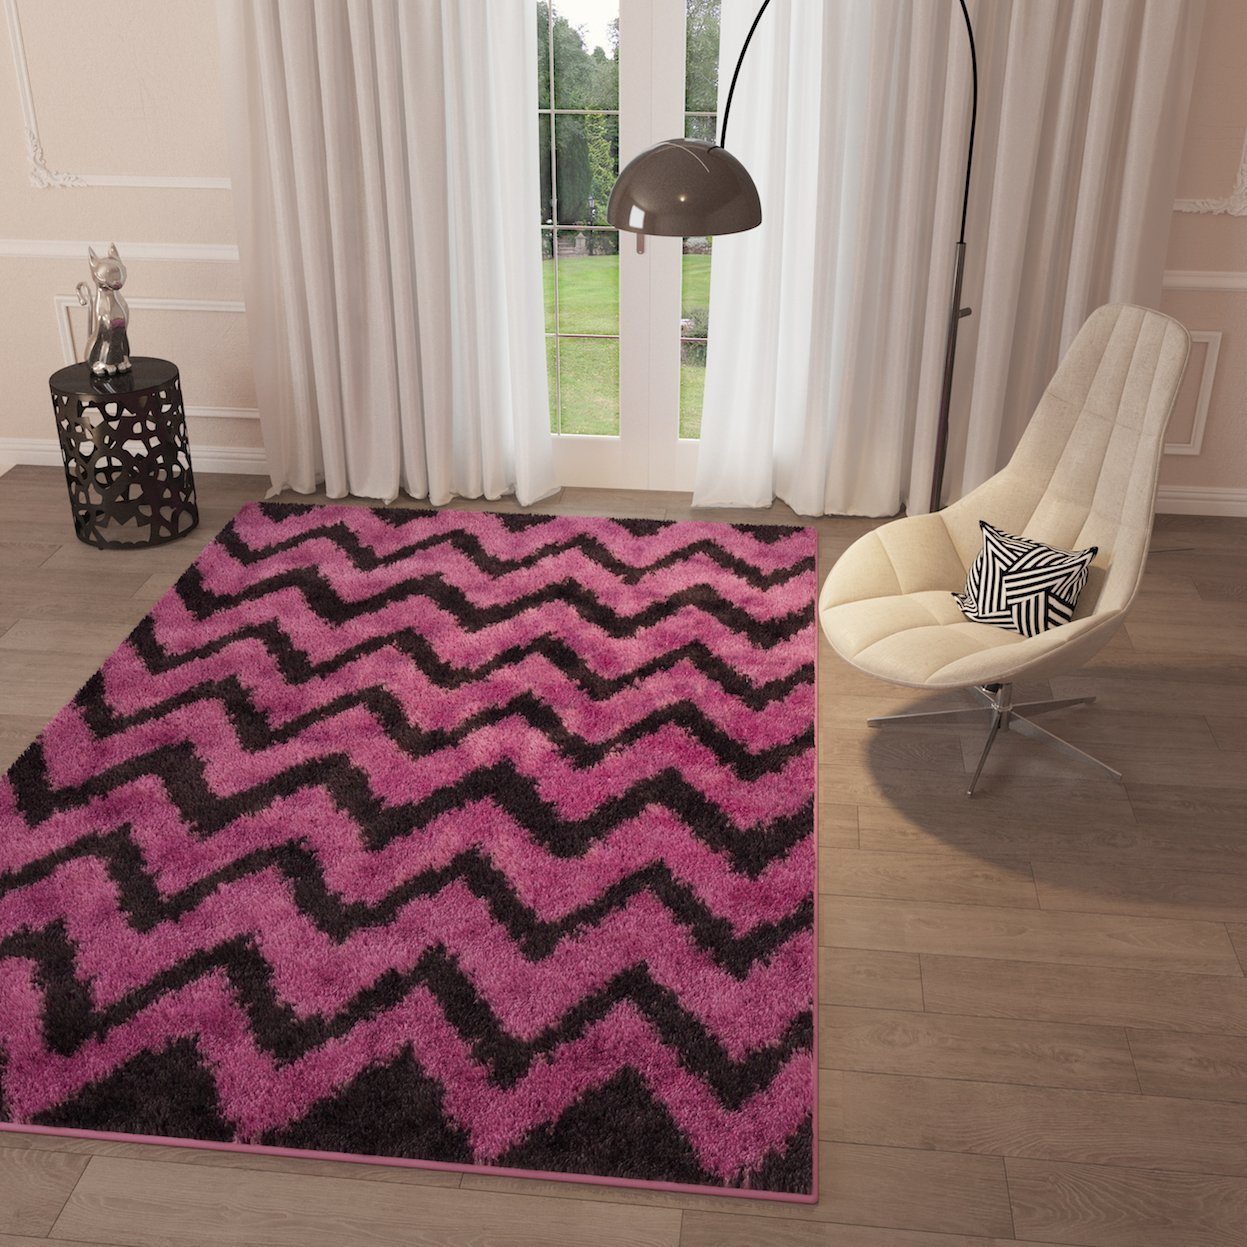 Get Quotations Pink Chevron Shag Area Rug Geometric Modern Contemporary Living Dining Room Bedroom Kitchen